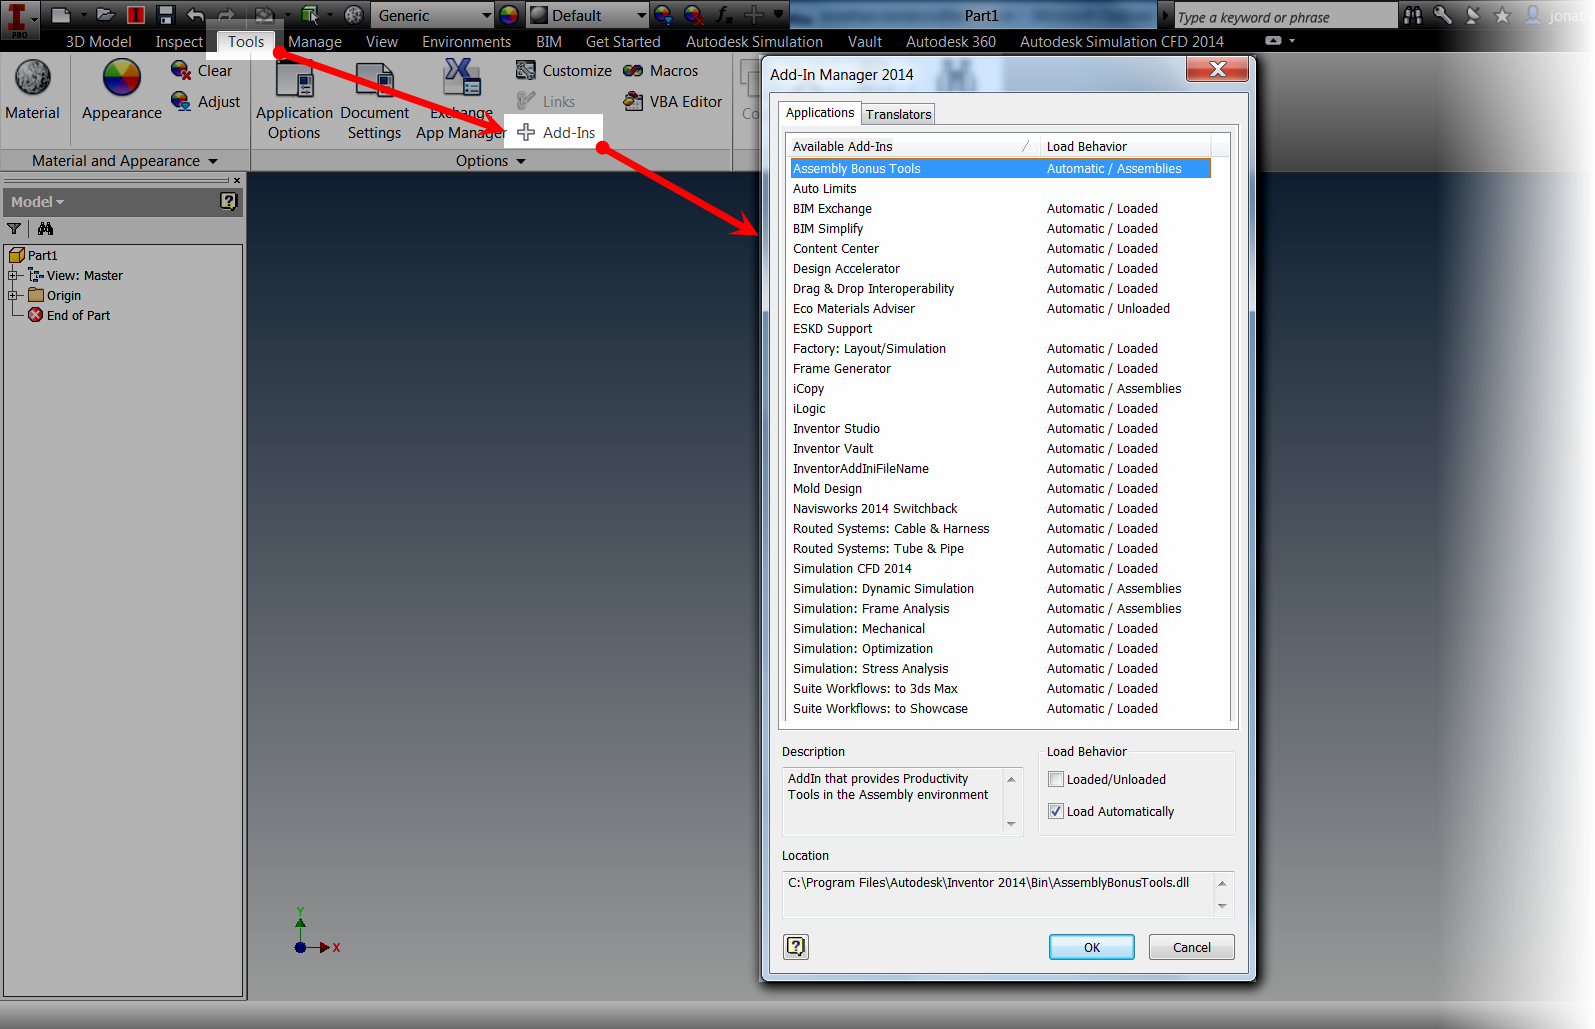 Autodesk Vault Ribbon Disappears when Starting a Component